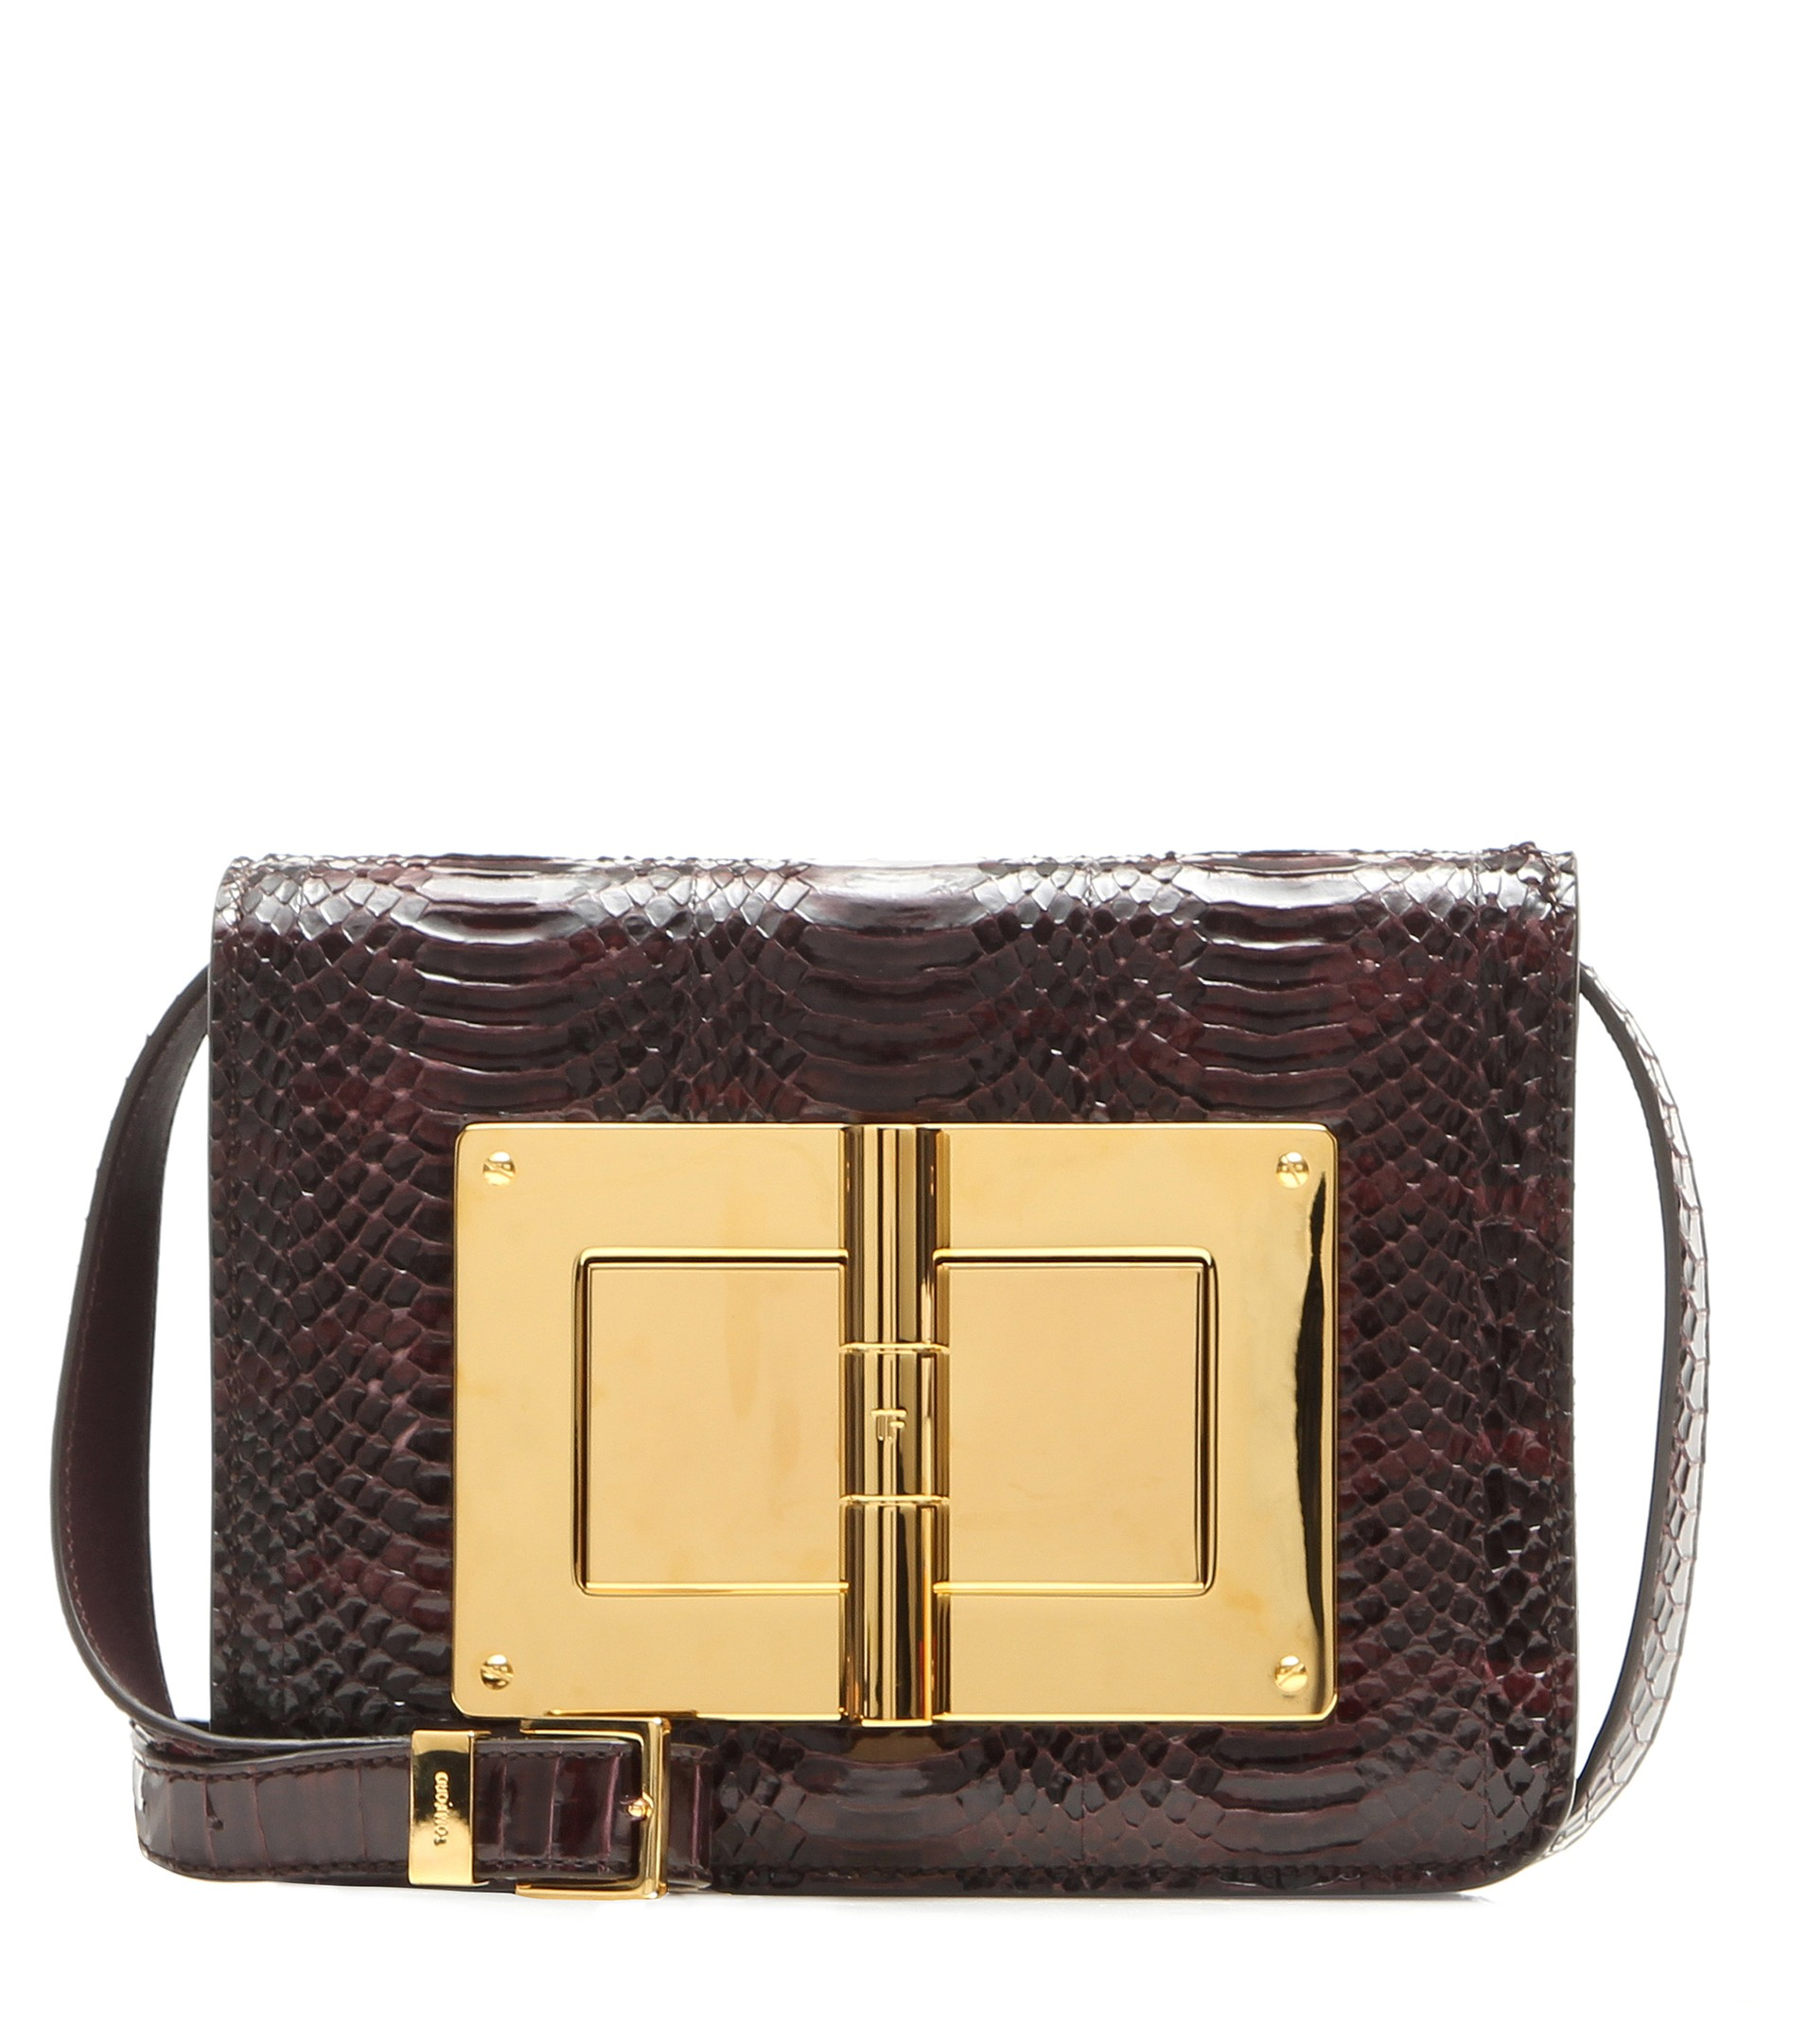 cca147f48d8c Lyst - Tom Ford Natalia Medium Snakeskin Shoulder Bag in Purple